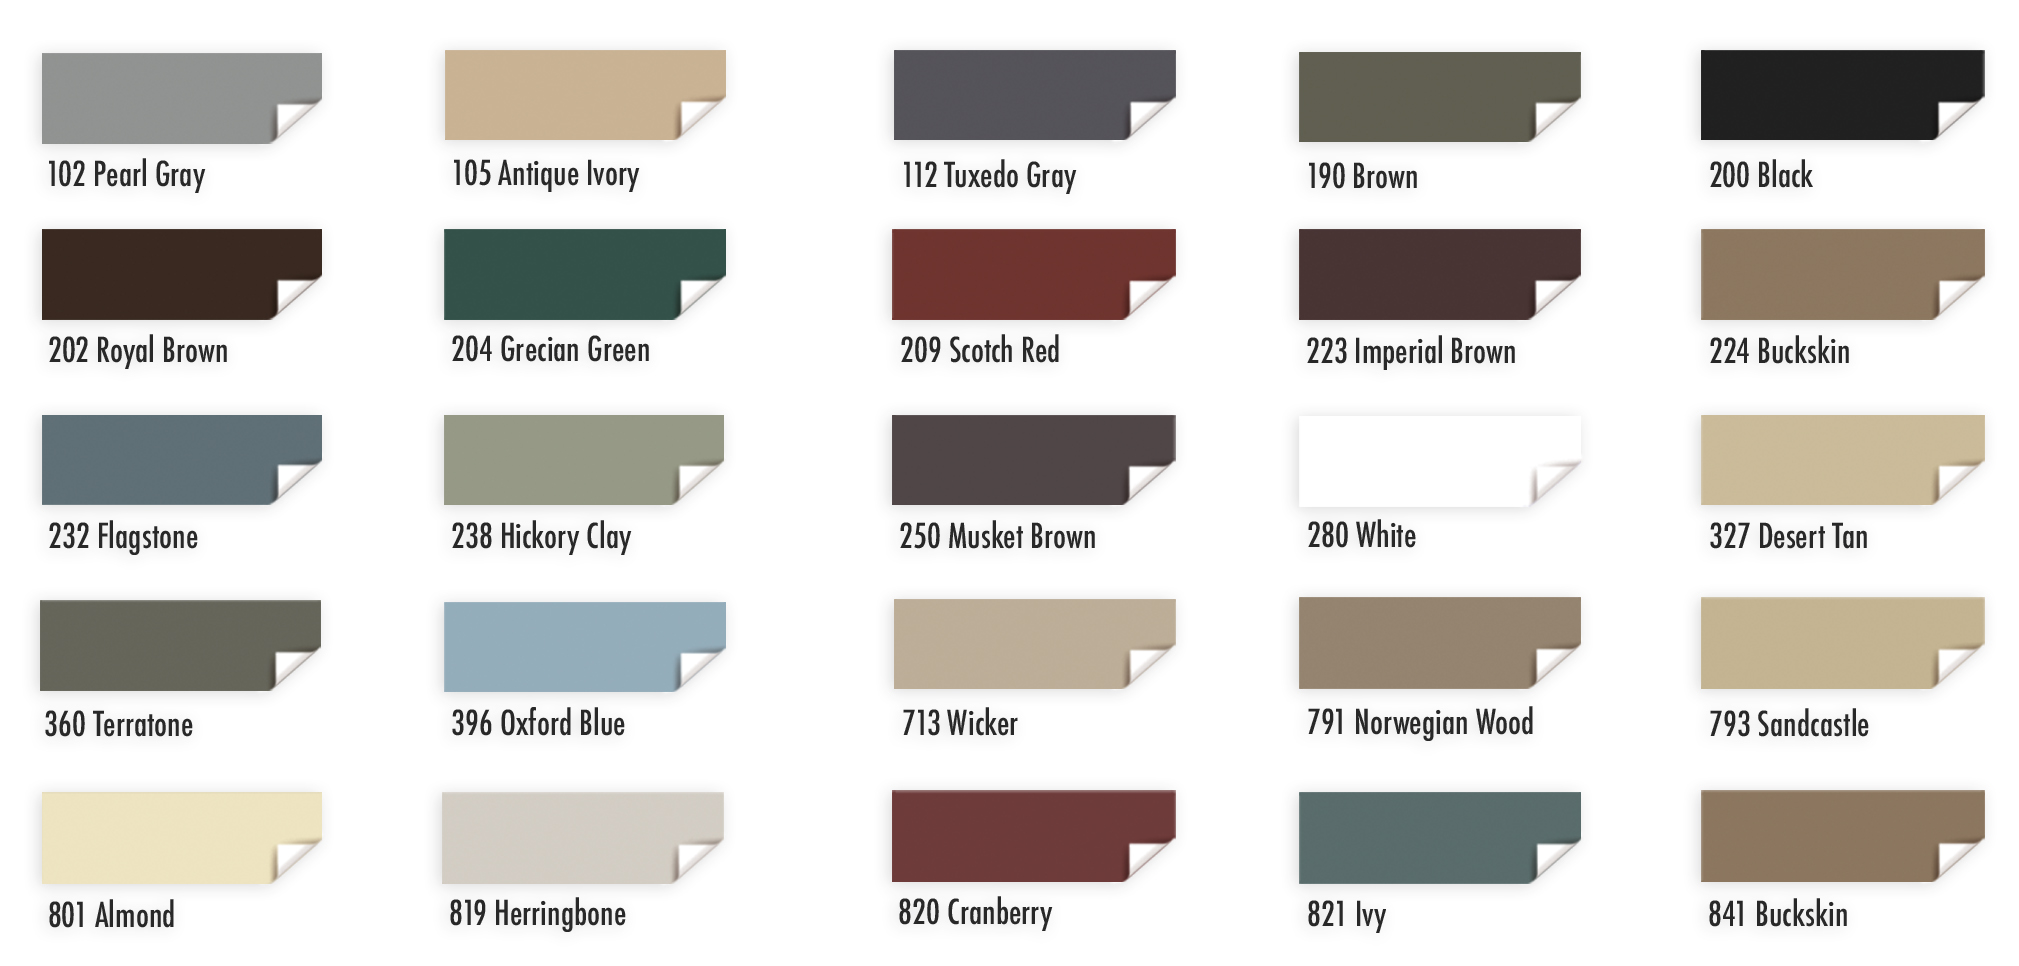 wallside-windows-exterior-trim-colors-styles